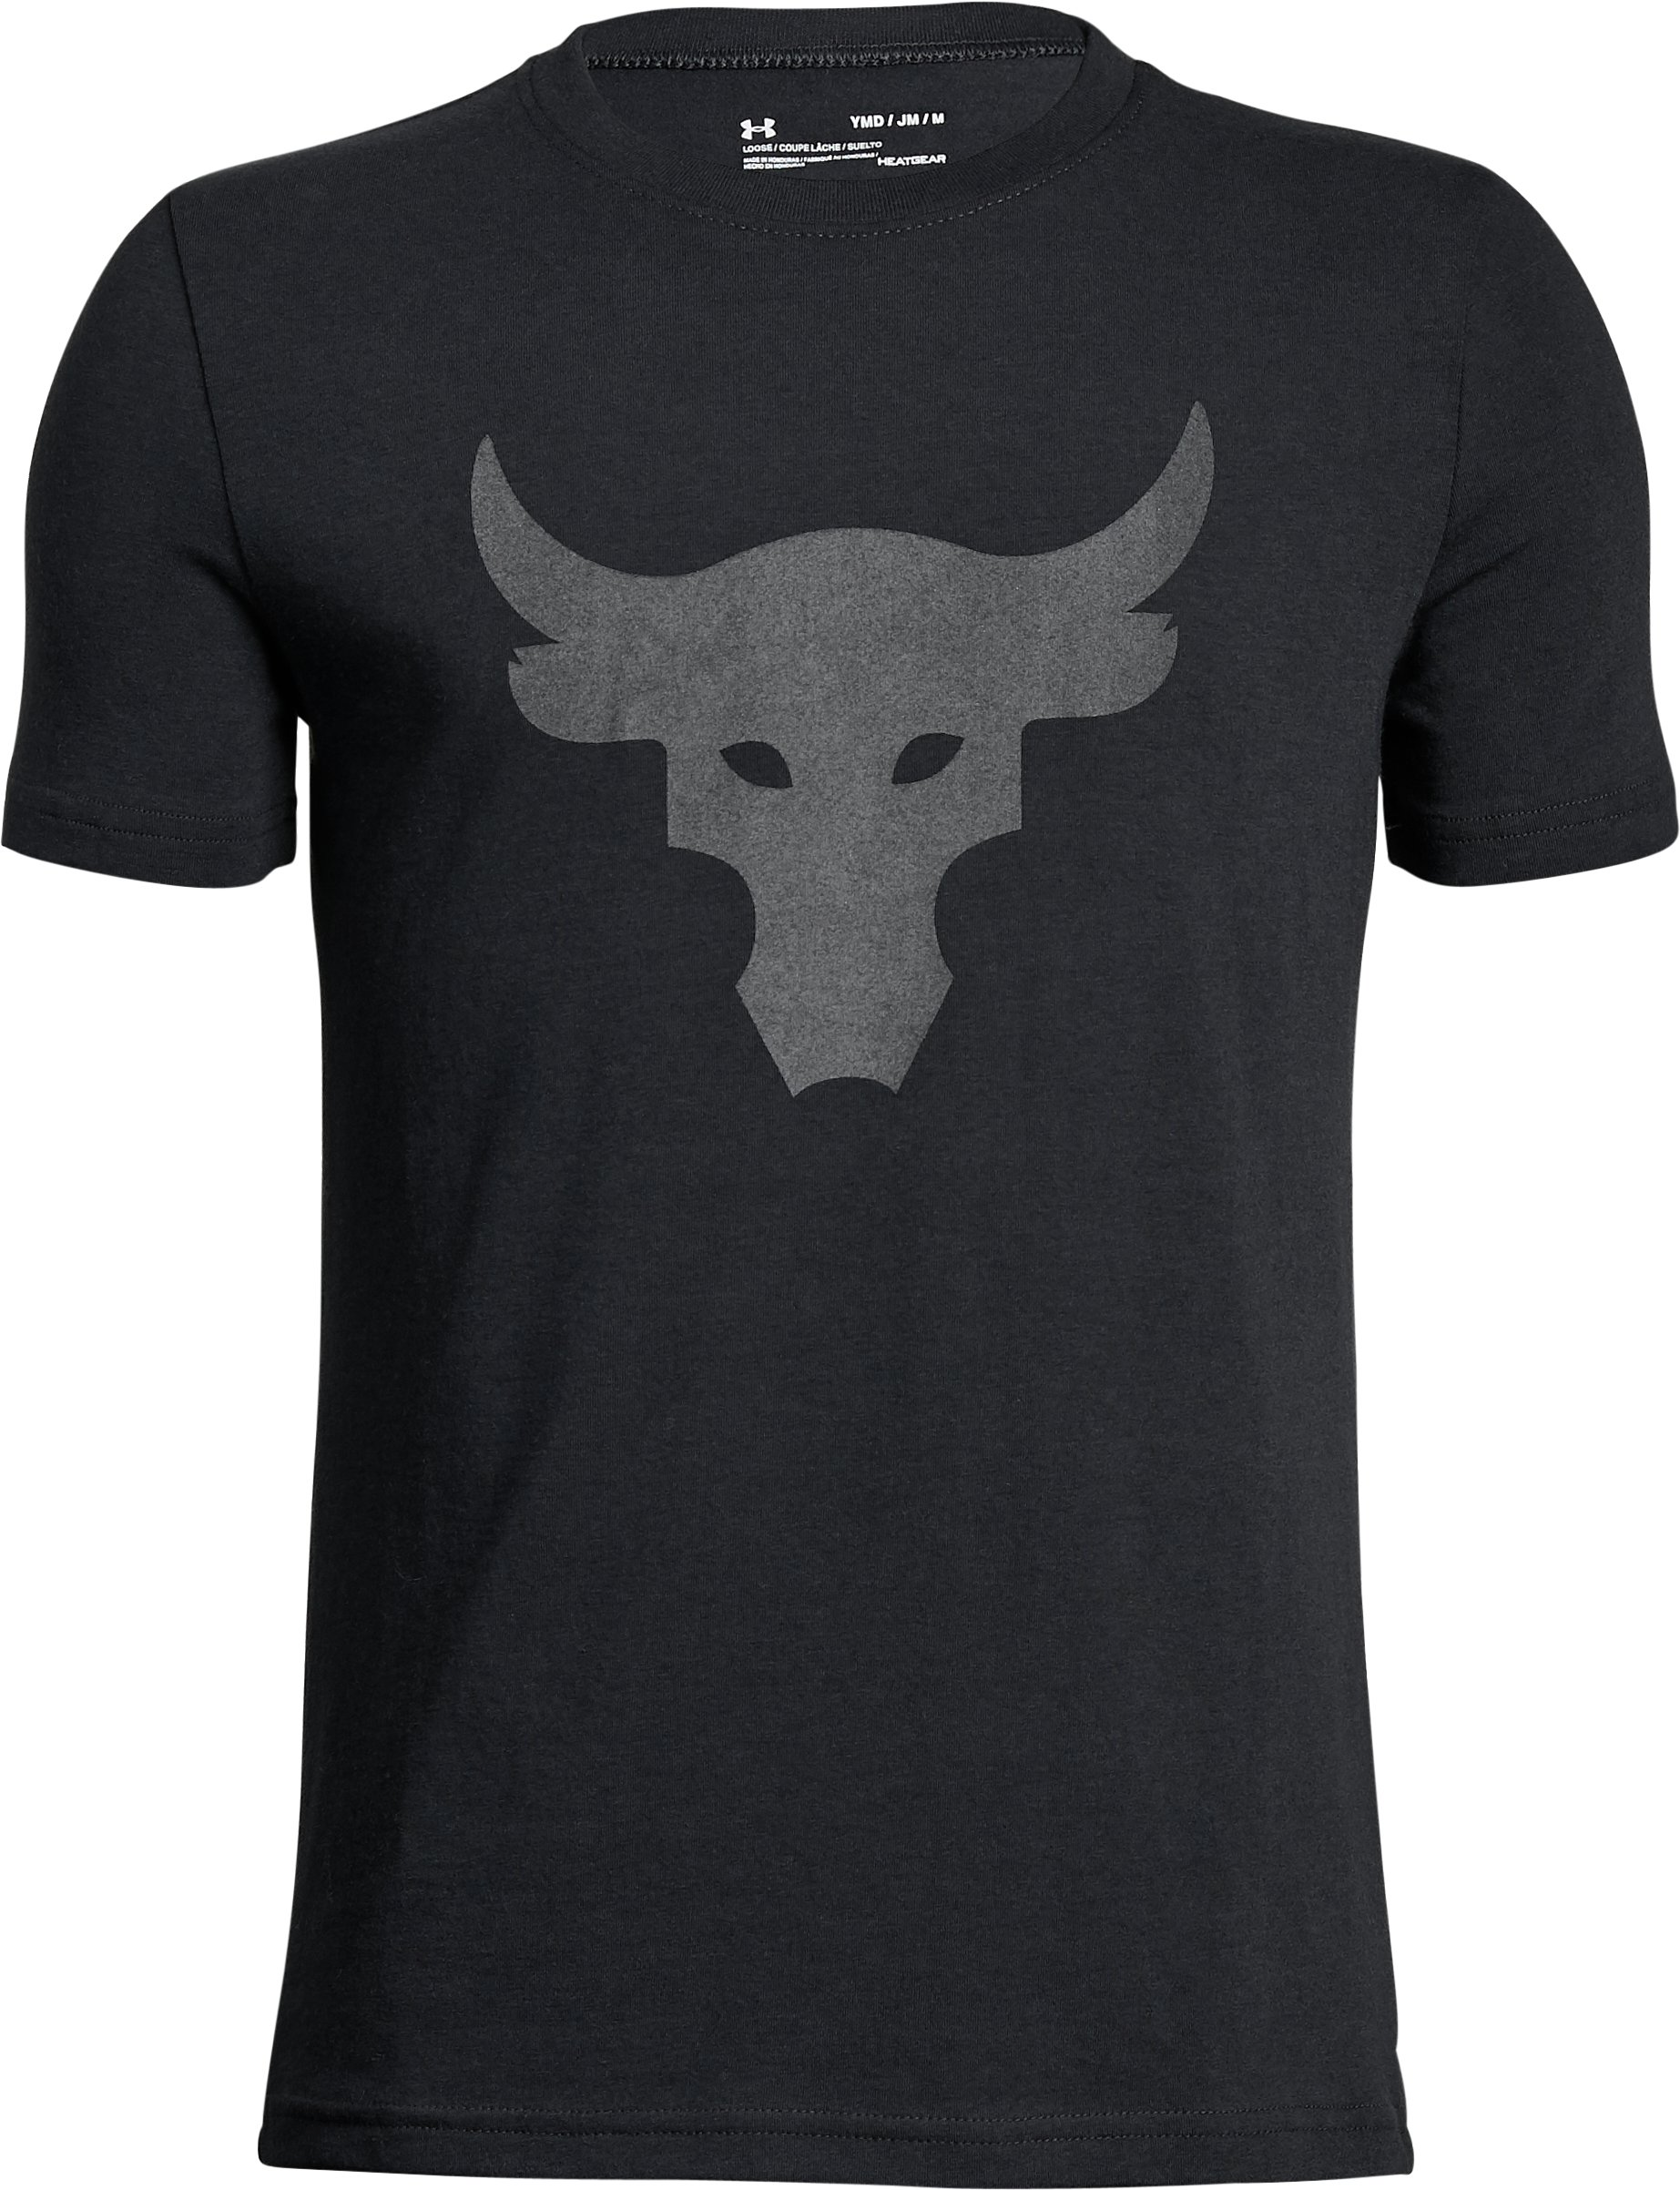 Boys' UA x Project Rock Stealth Bull T-Shirt, Black